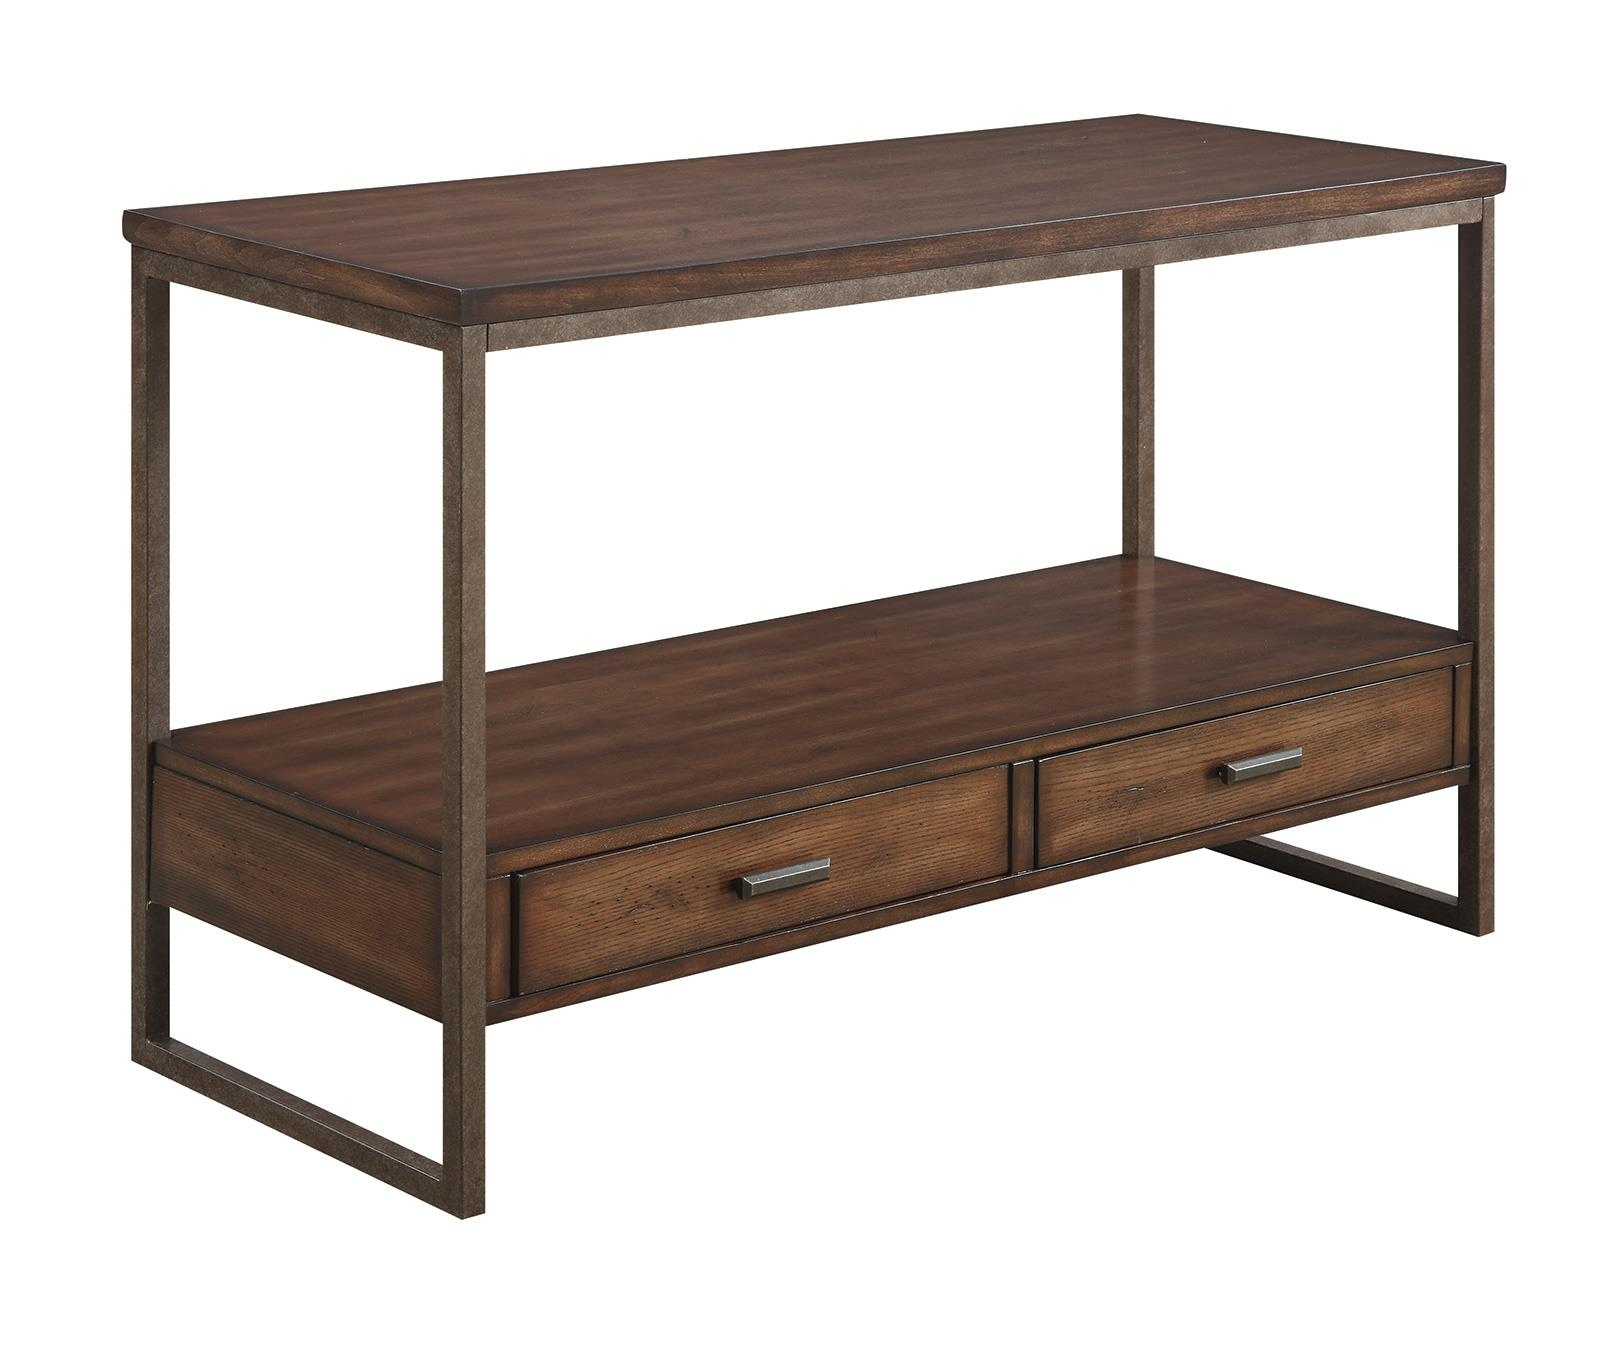 70430 Industrial Sofa Table With Two Drawers Quality